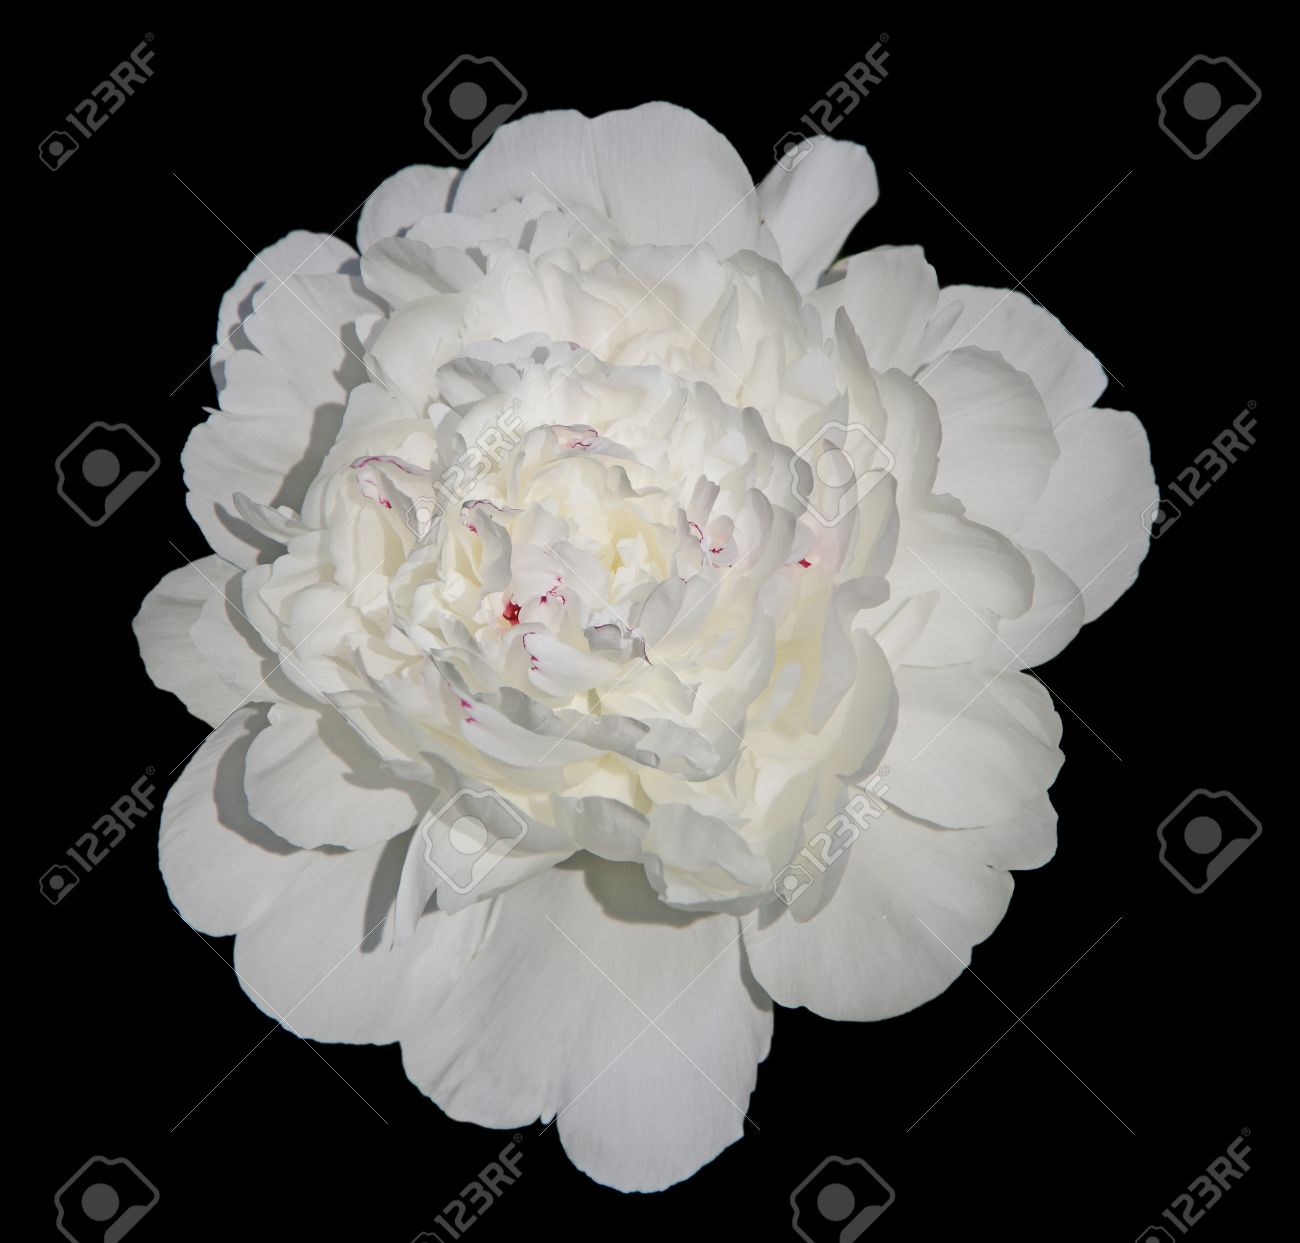 Single white peony flower isolated on black background stock photo single white peony flower isolated on black background stock photo 13956378 mightylinksfo Image collections